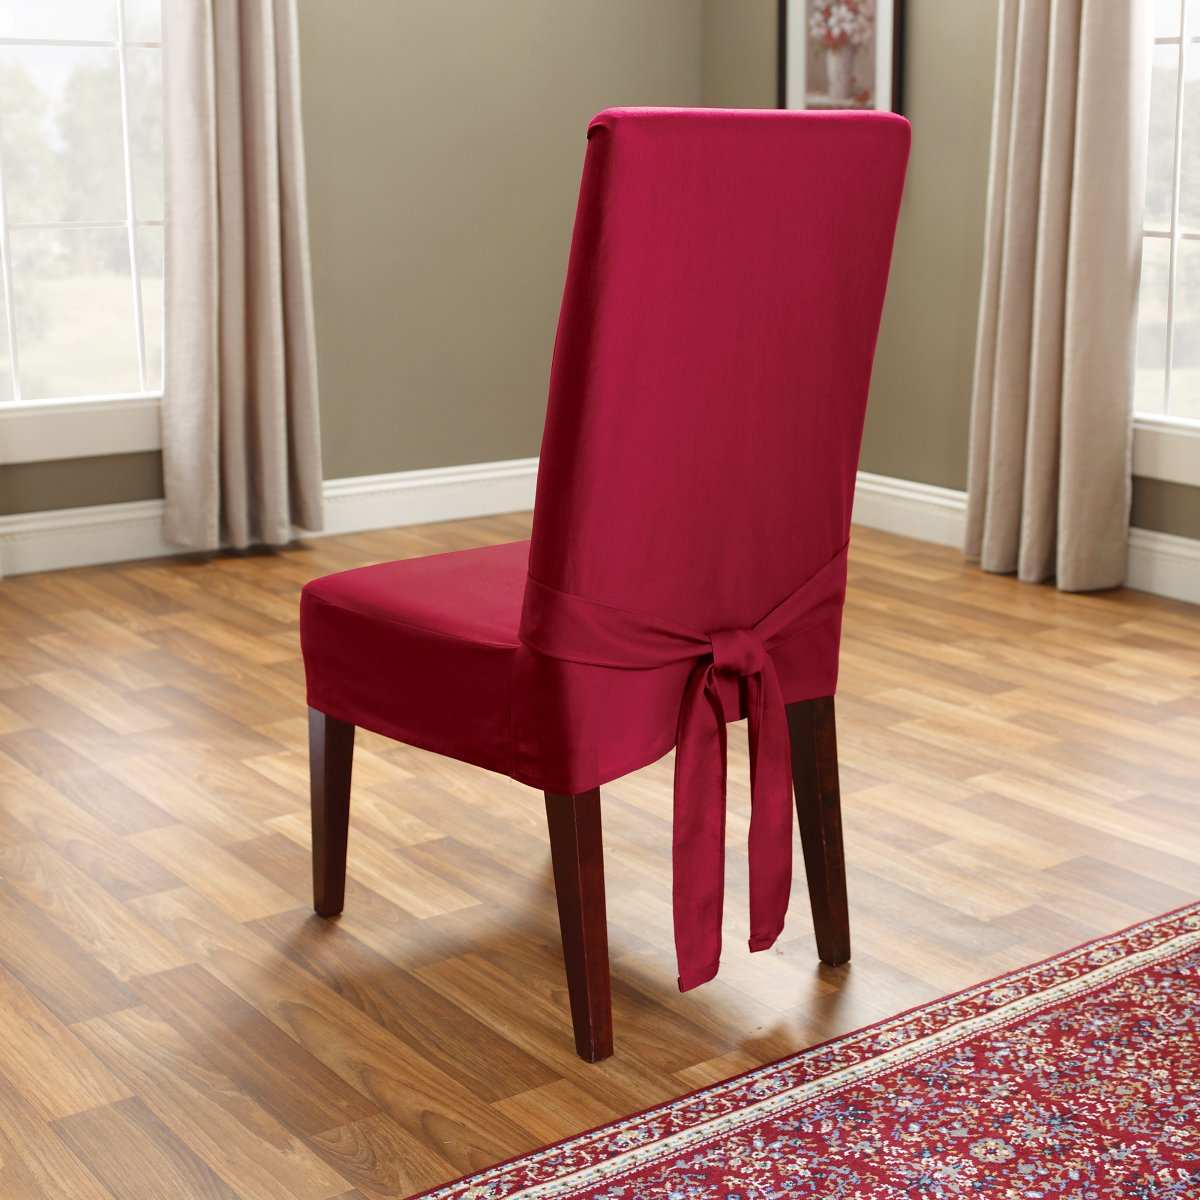 Pictures of dining room chairs